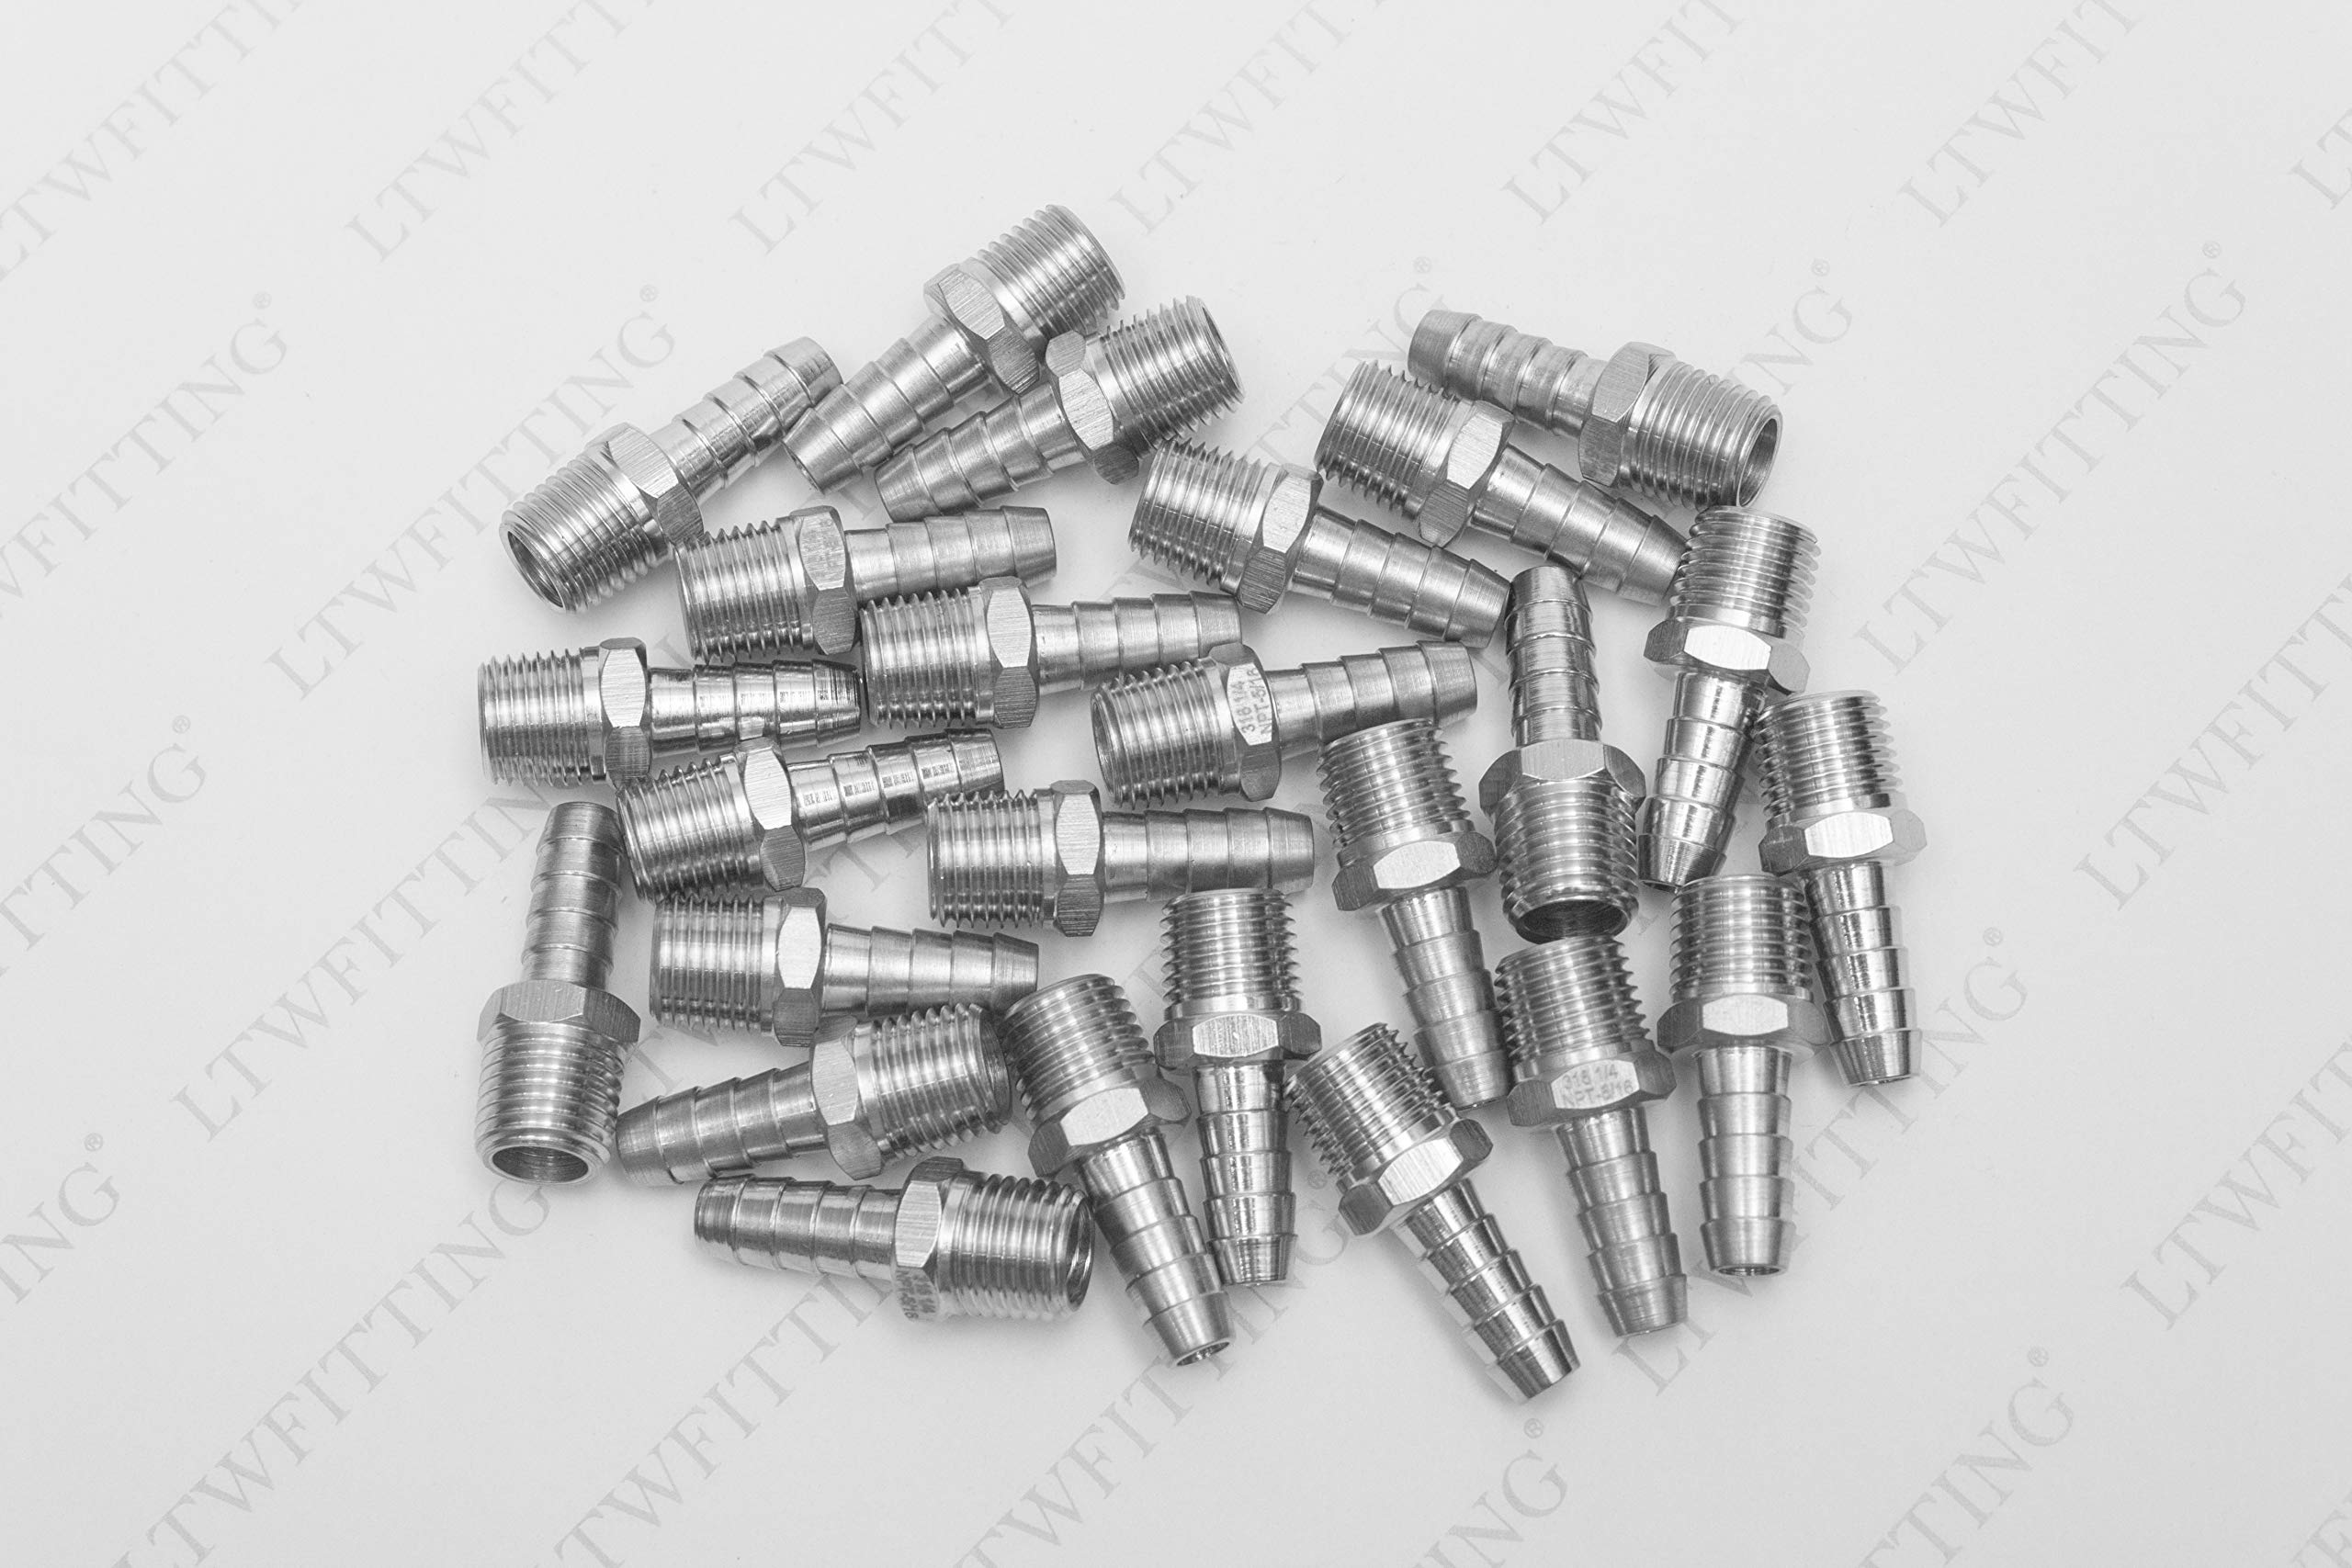 LTWFITTING Bar Production Stainless Steel 316 Barb Fitting Coupler/Connector 5/16'' Hose ID x 1/4'' Male NPT Air Fuel Water (Pack of 25) by LTWFITTING (Image #2)